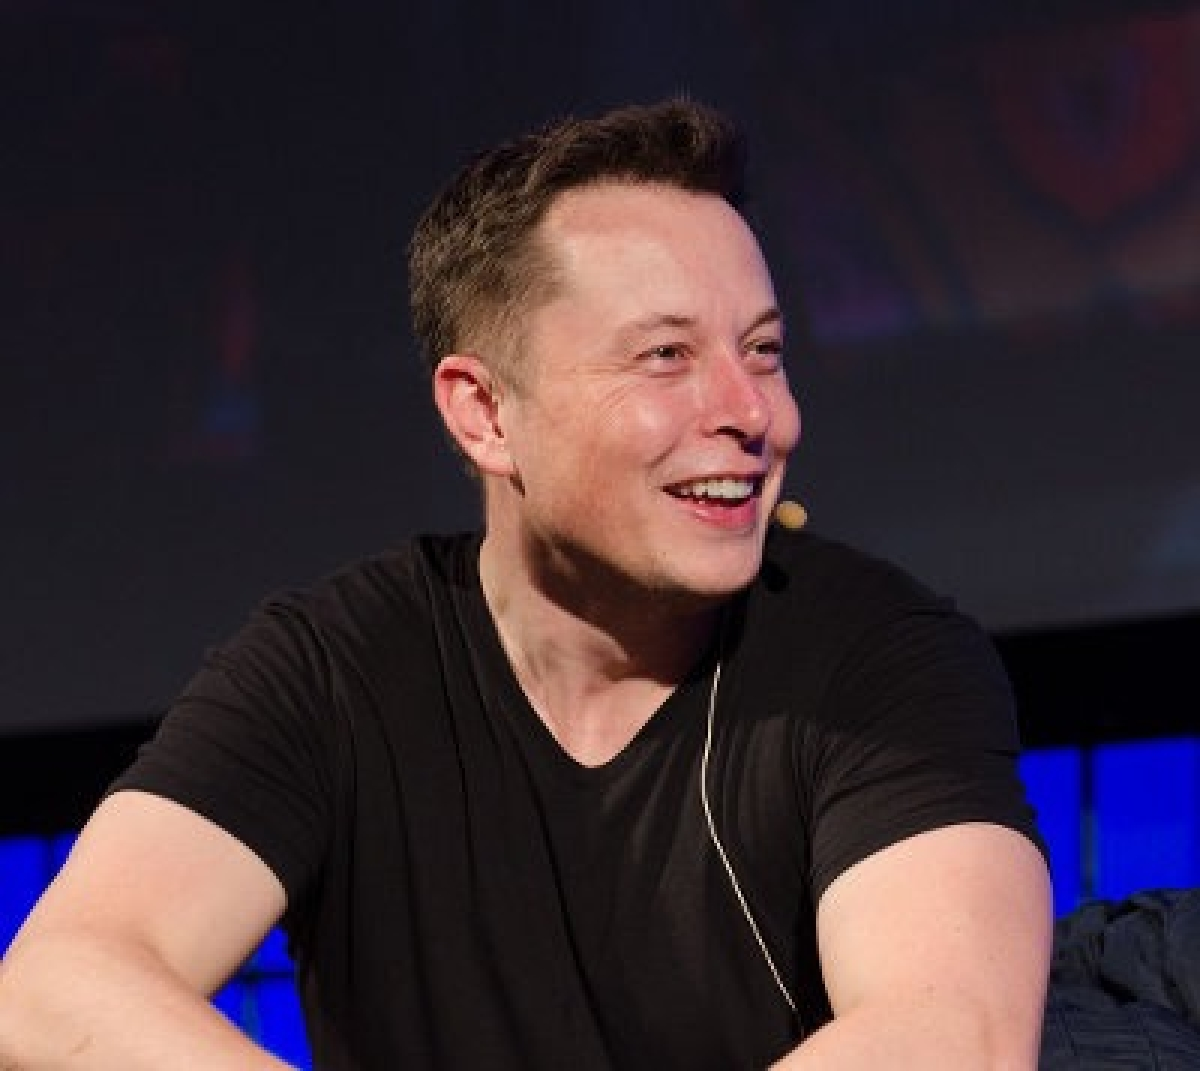 Elon Musk scouting for potential Mars landing sites